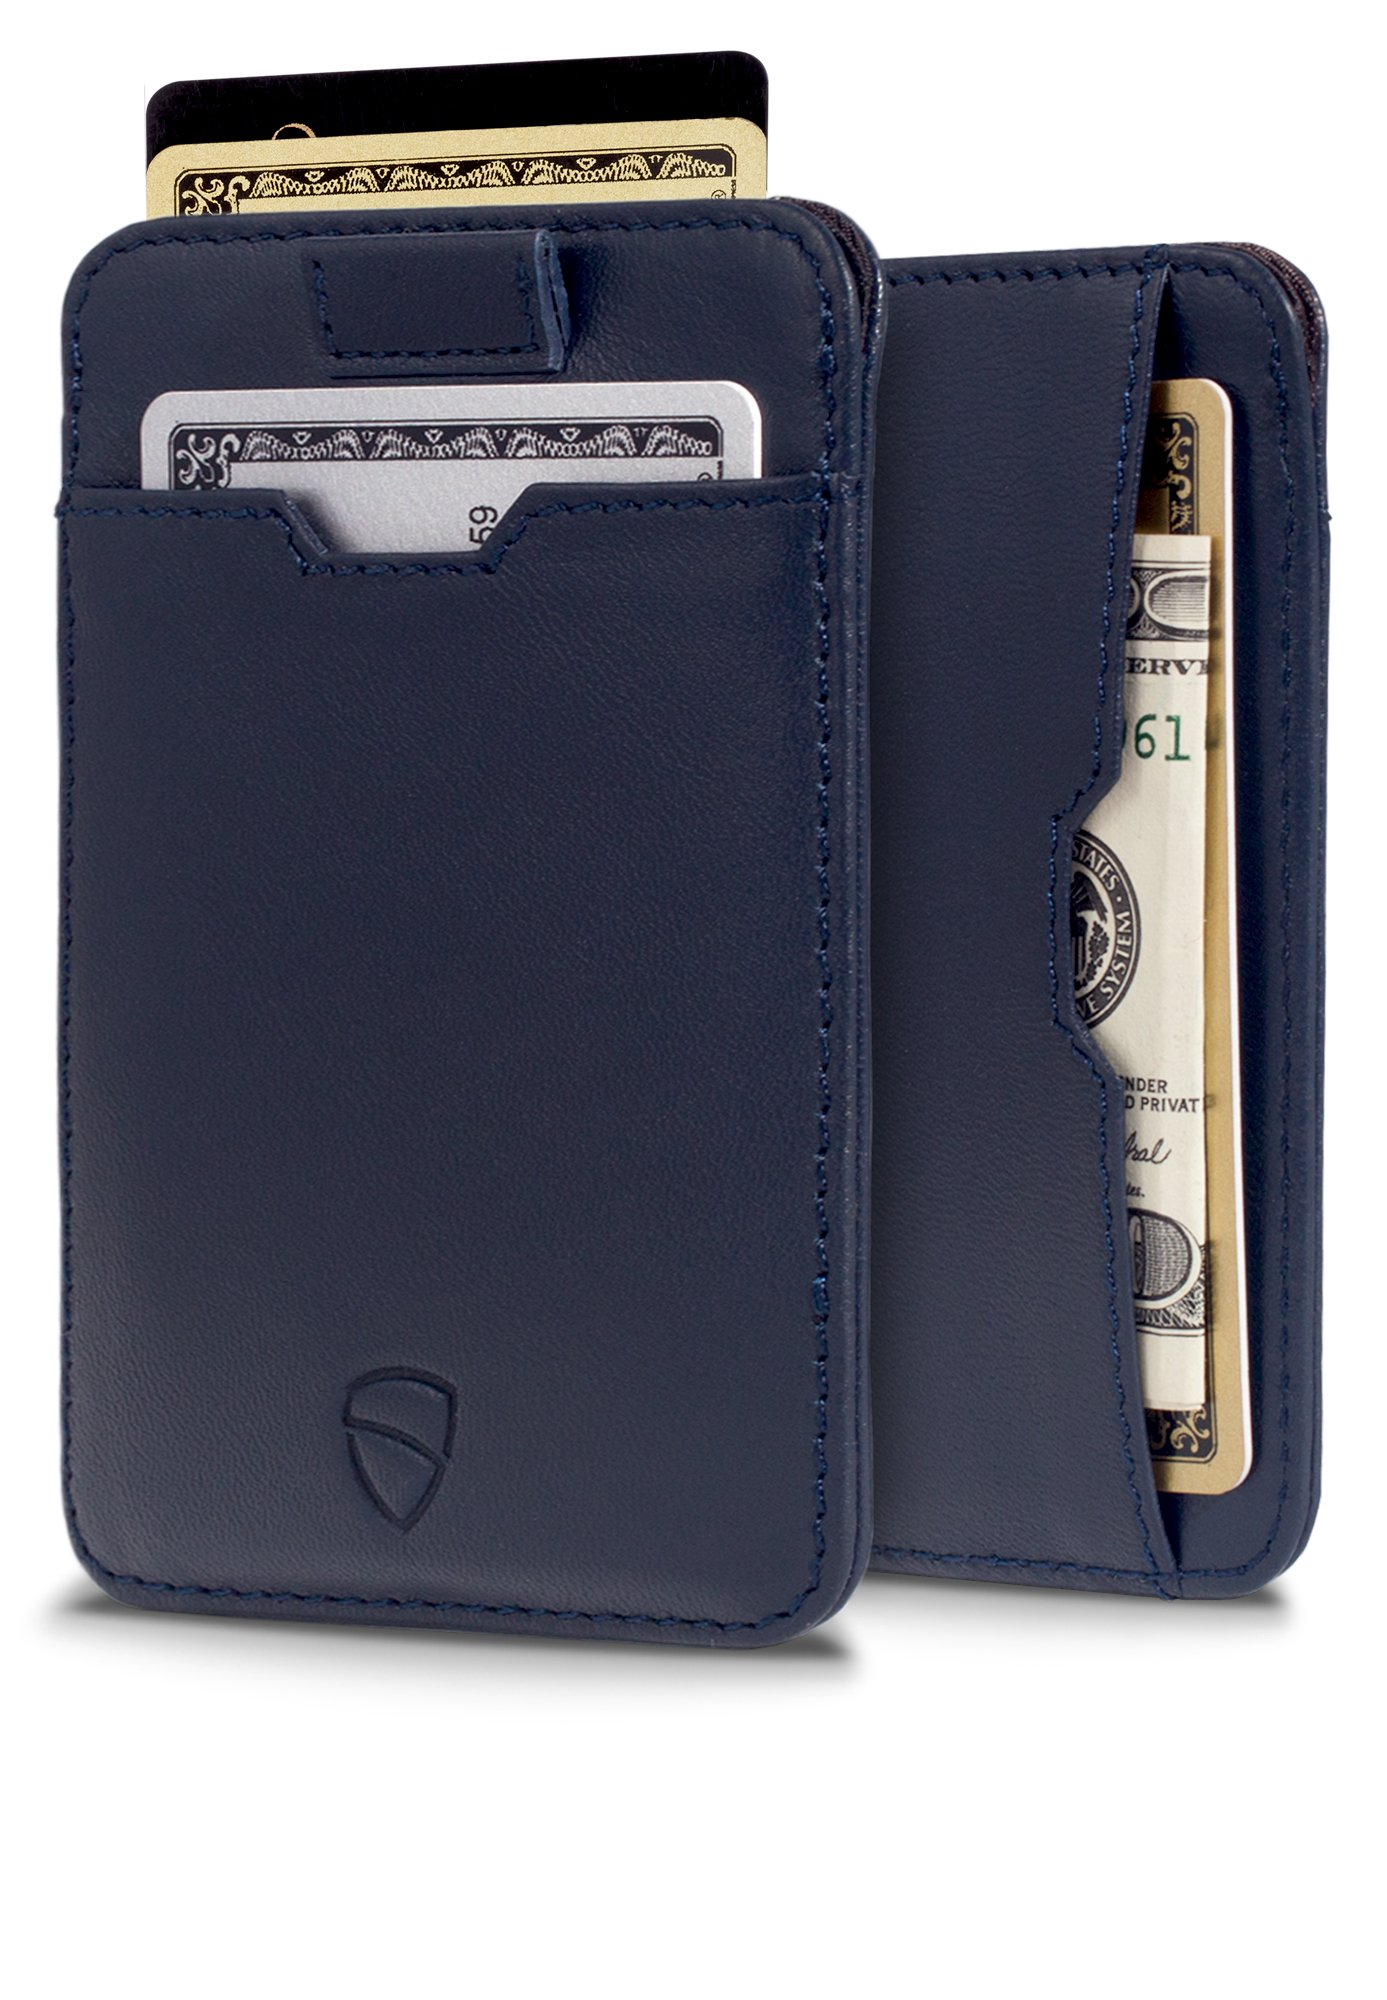 Chelsea Slim Card Sleeve Wallet with RFID Protection by Vaultskin – Top Quality Italian Leather - Ultra Thin Card Holder Design For Up To 10 Cards (Navy Blue)